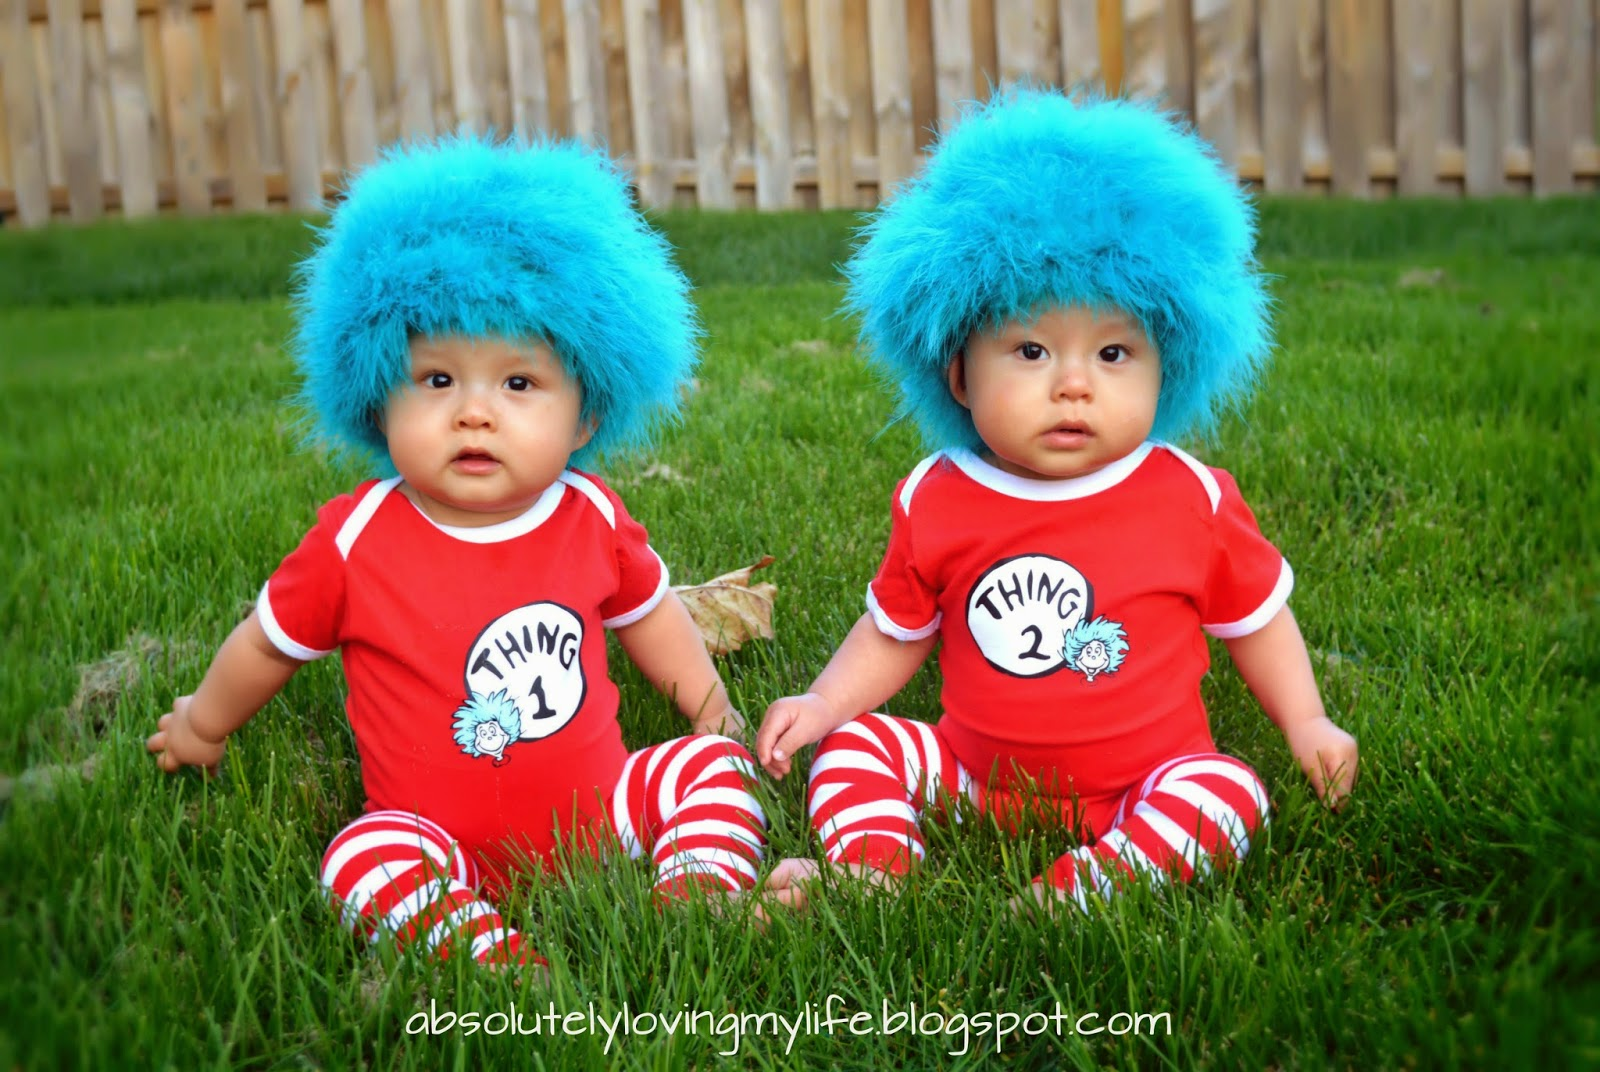 diy thing 1 and thing 2 baby costumes - Walmart Halloween Costumes For Baby